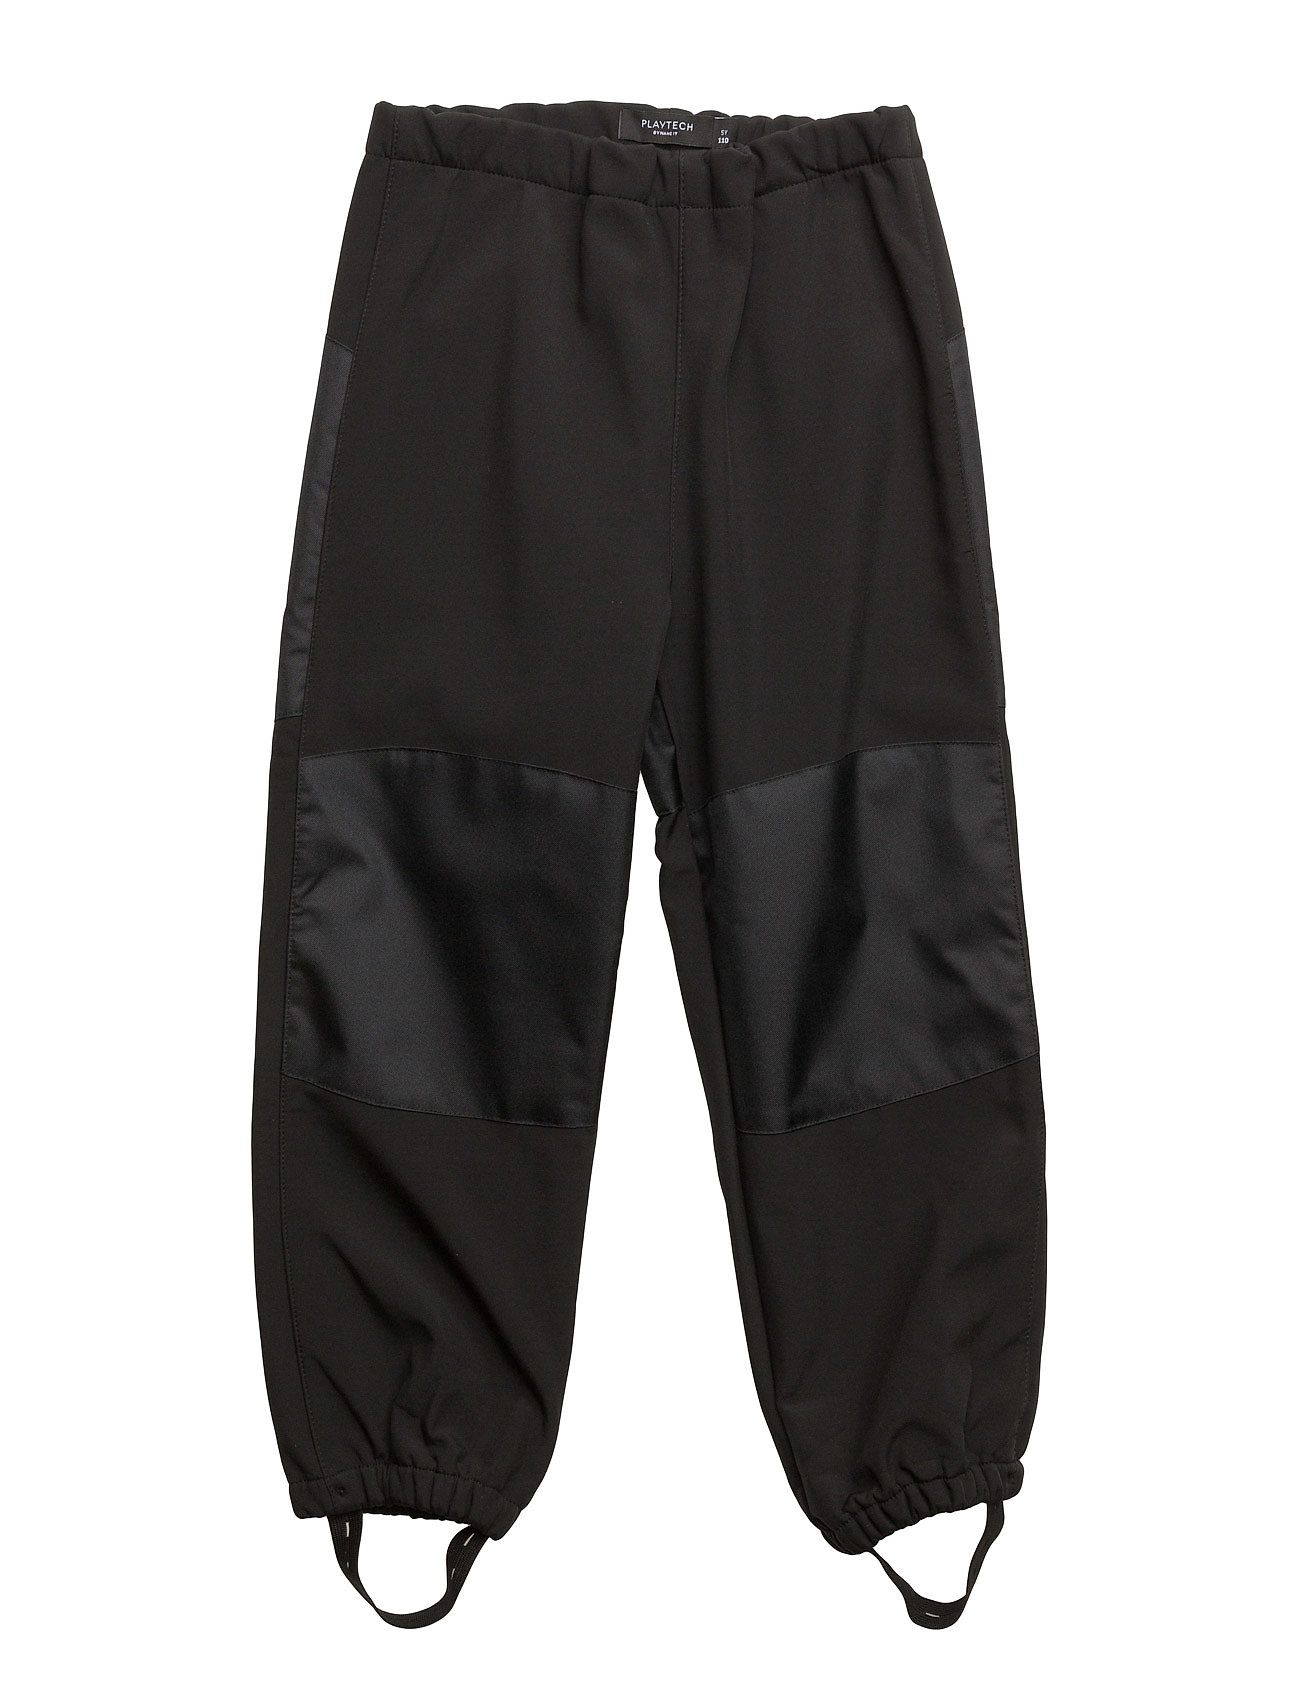 name it – Nitalfa softshell pant black mz fo på boozt.com dk